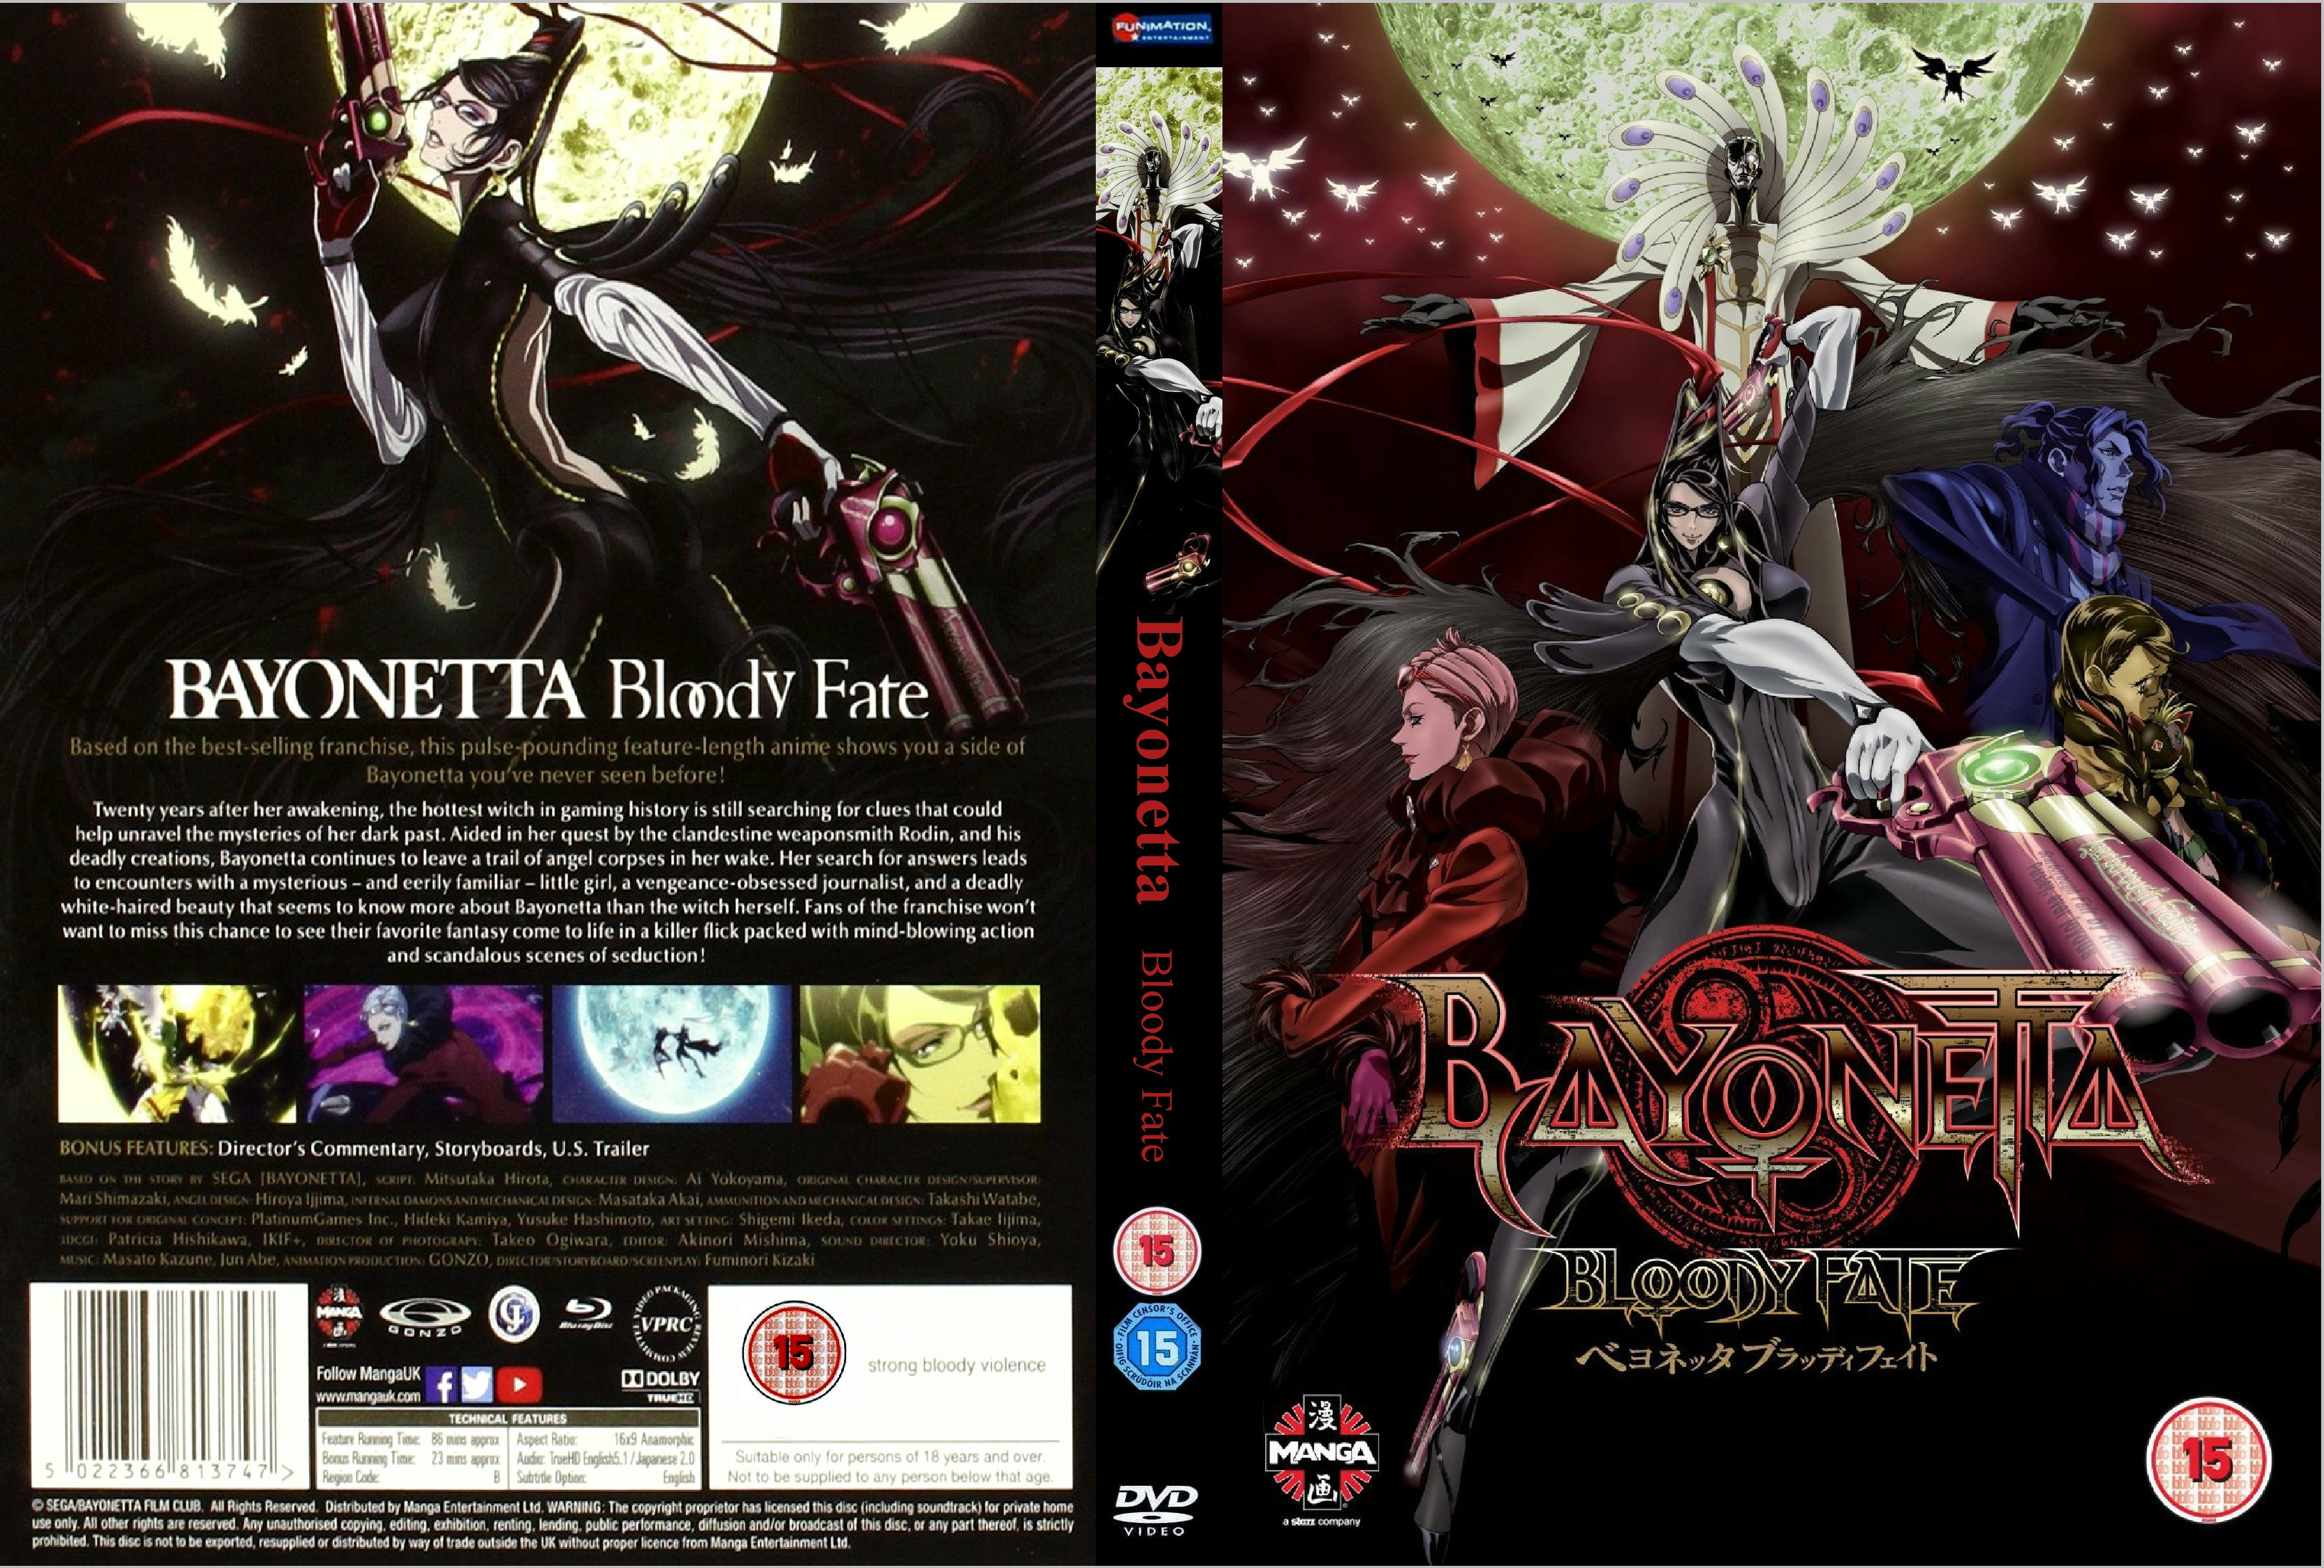 Covers Box Sk Bayonetta Bloody Fate 2013 High Quality Dvd